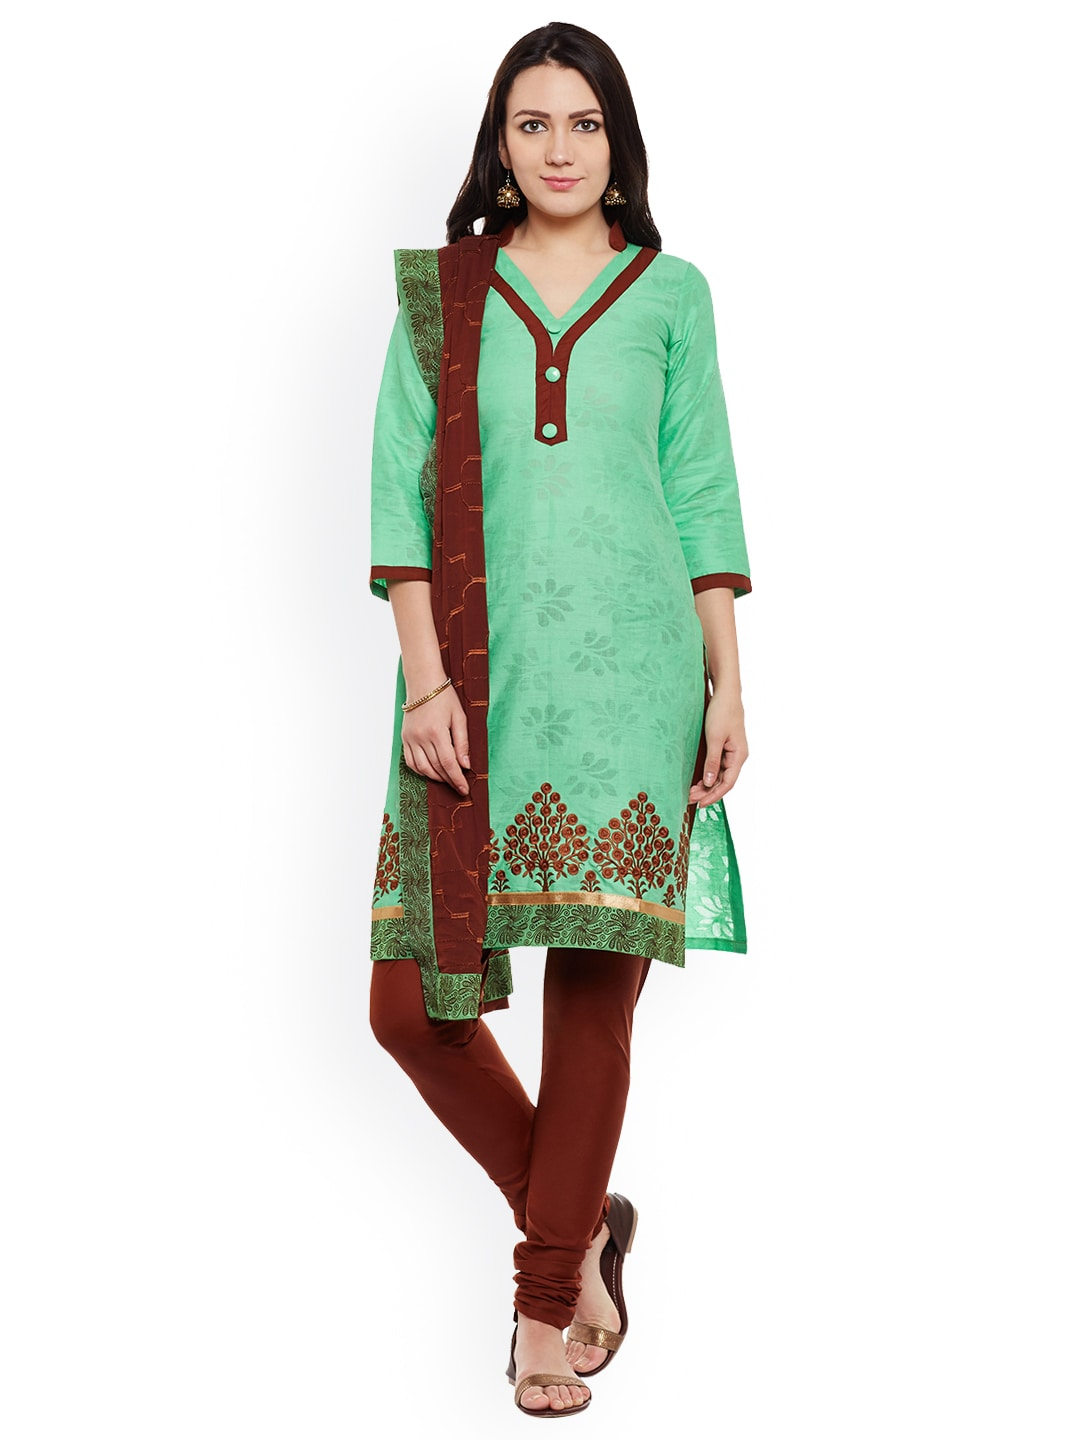 AgrohA Green & Brown Cotton Blend Unstitched Dress Material image